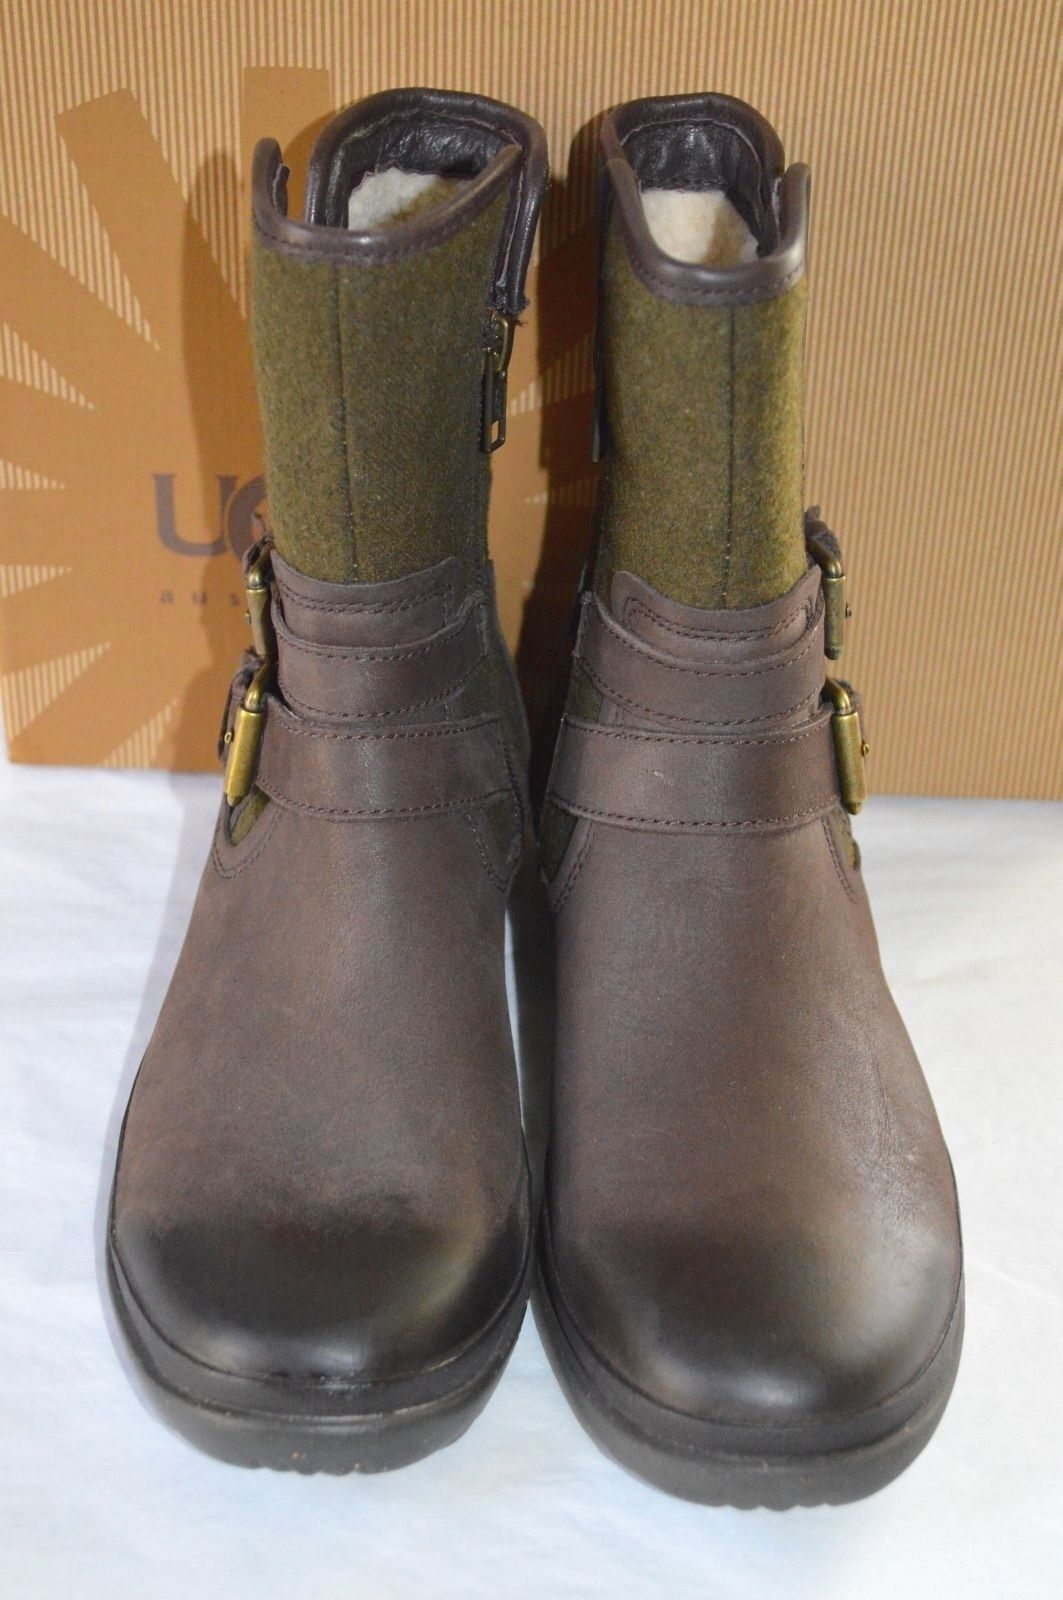 New  170 170 170 UG Simmens Stout Brown Leather Olive Green Wool Waterproof Boots sz 6 533cc7